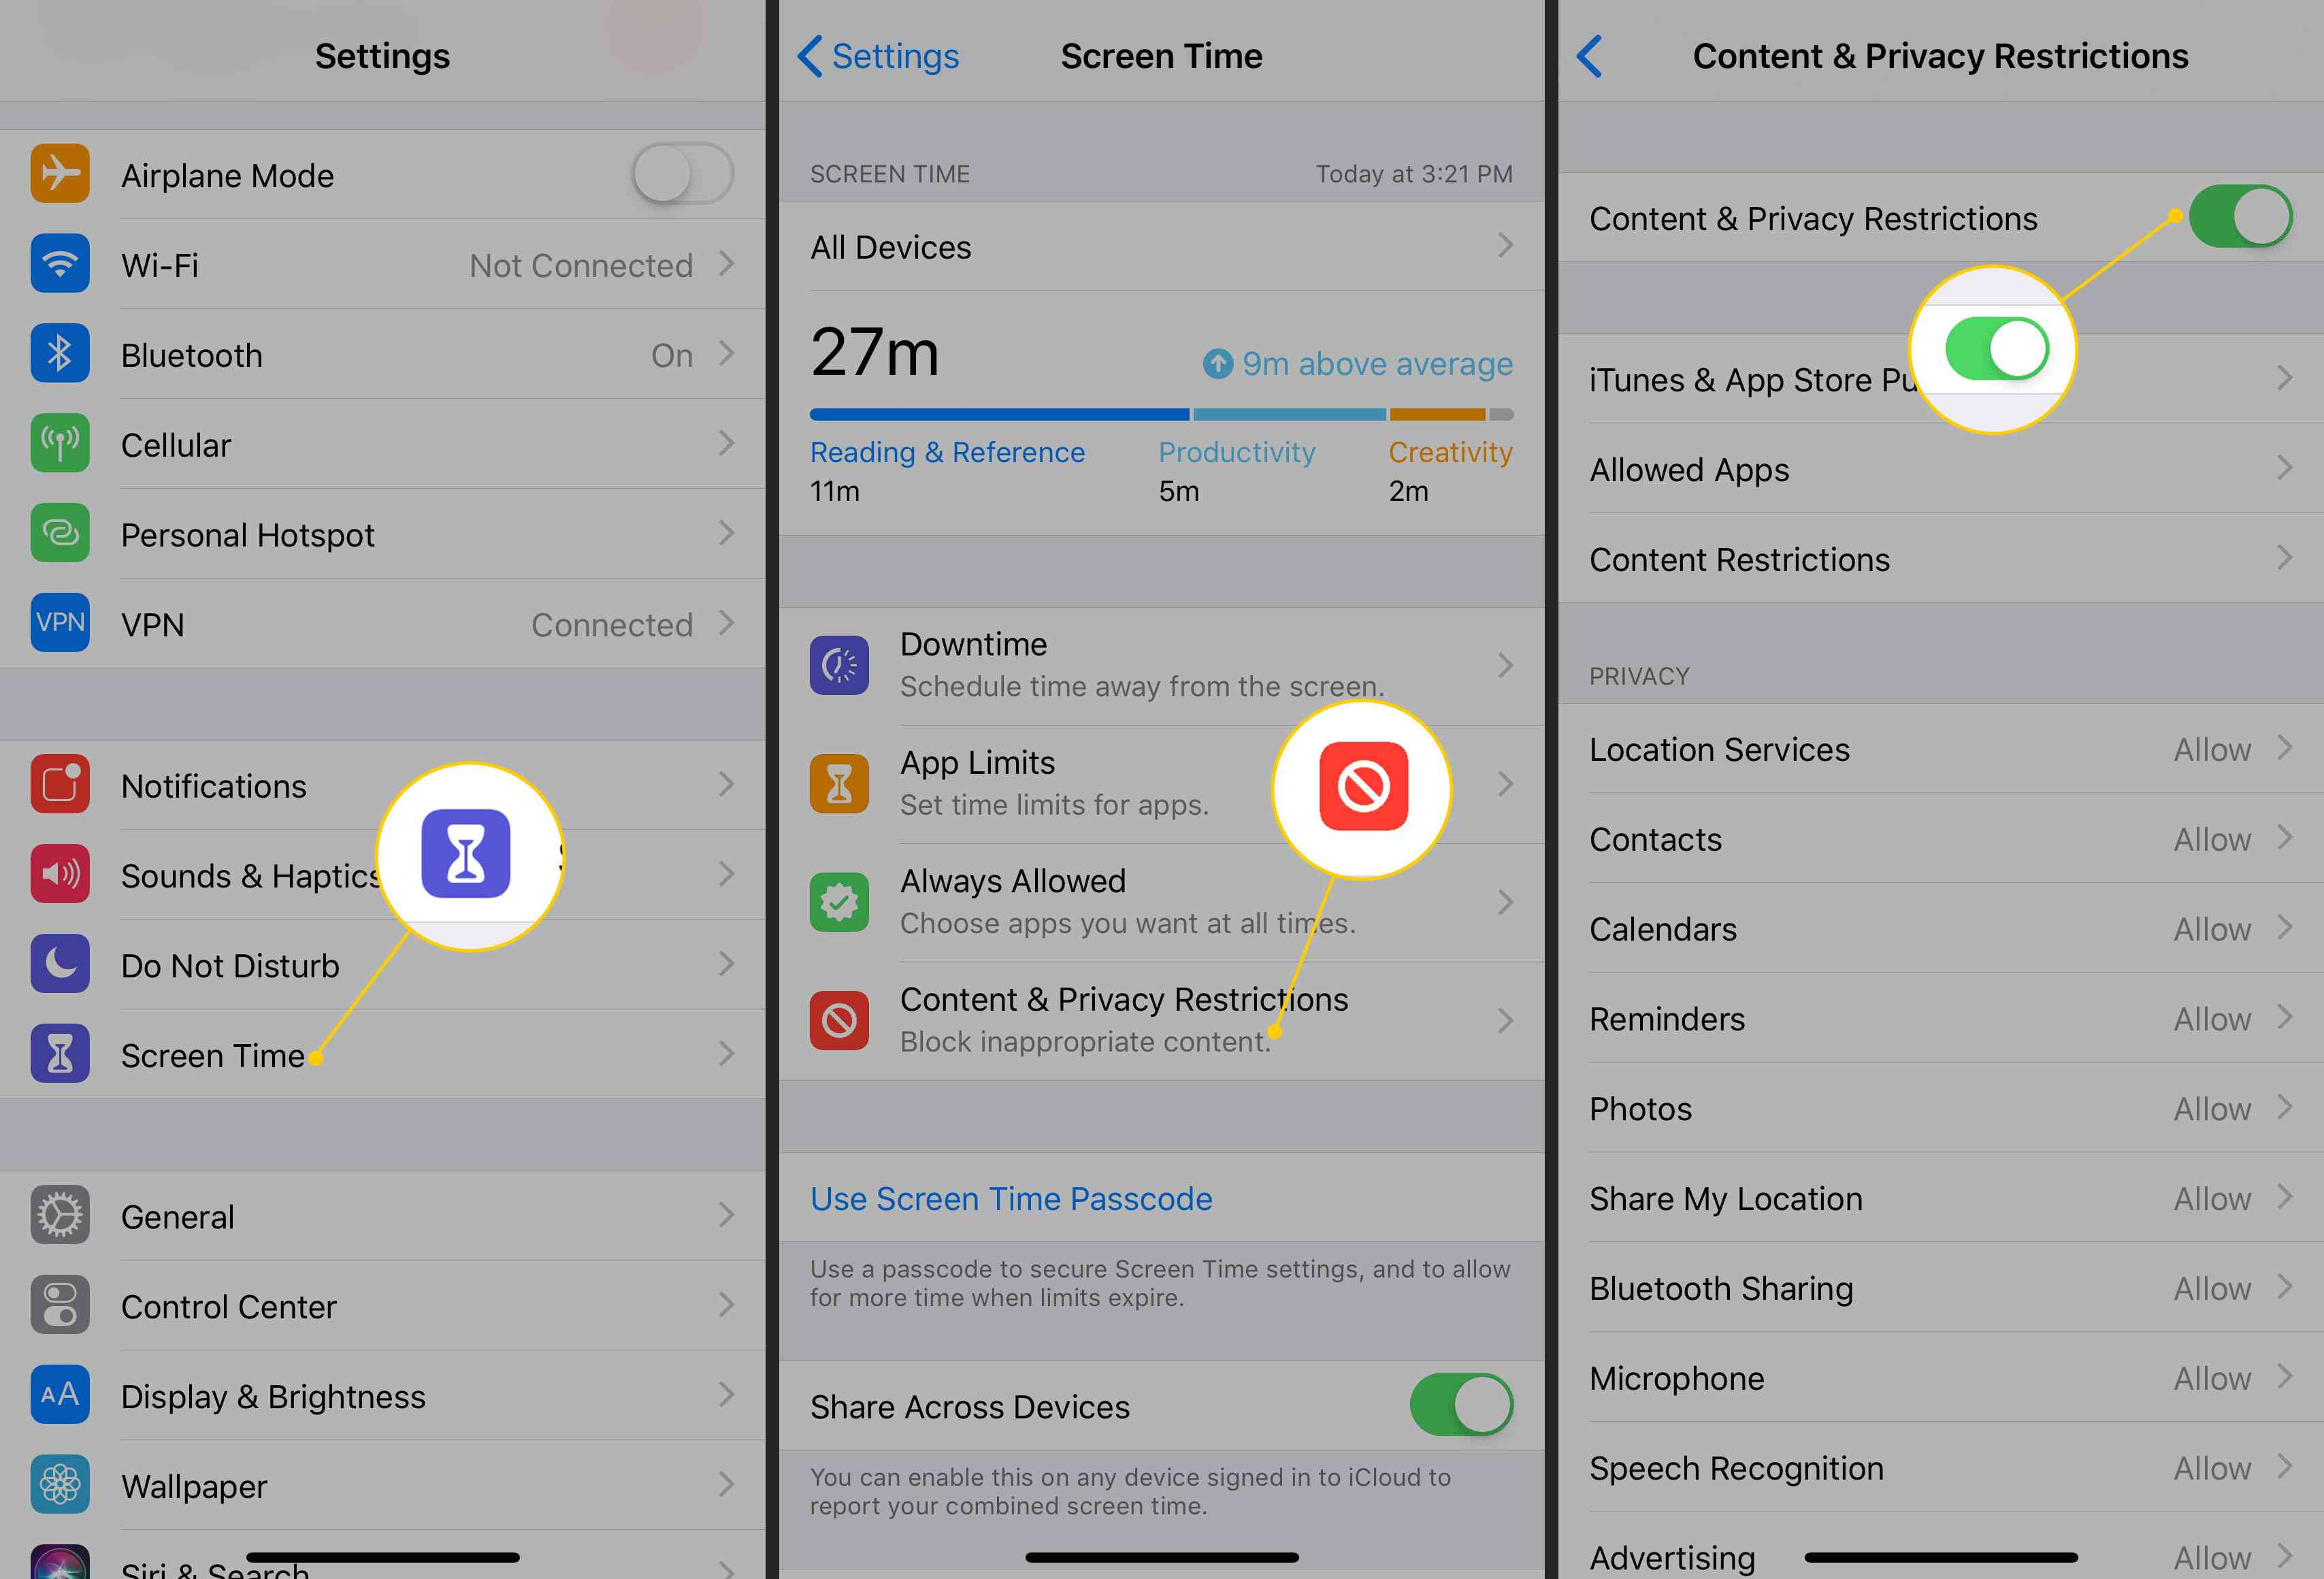 Turning on Content & Privacy Restrictions on an iPhone